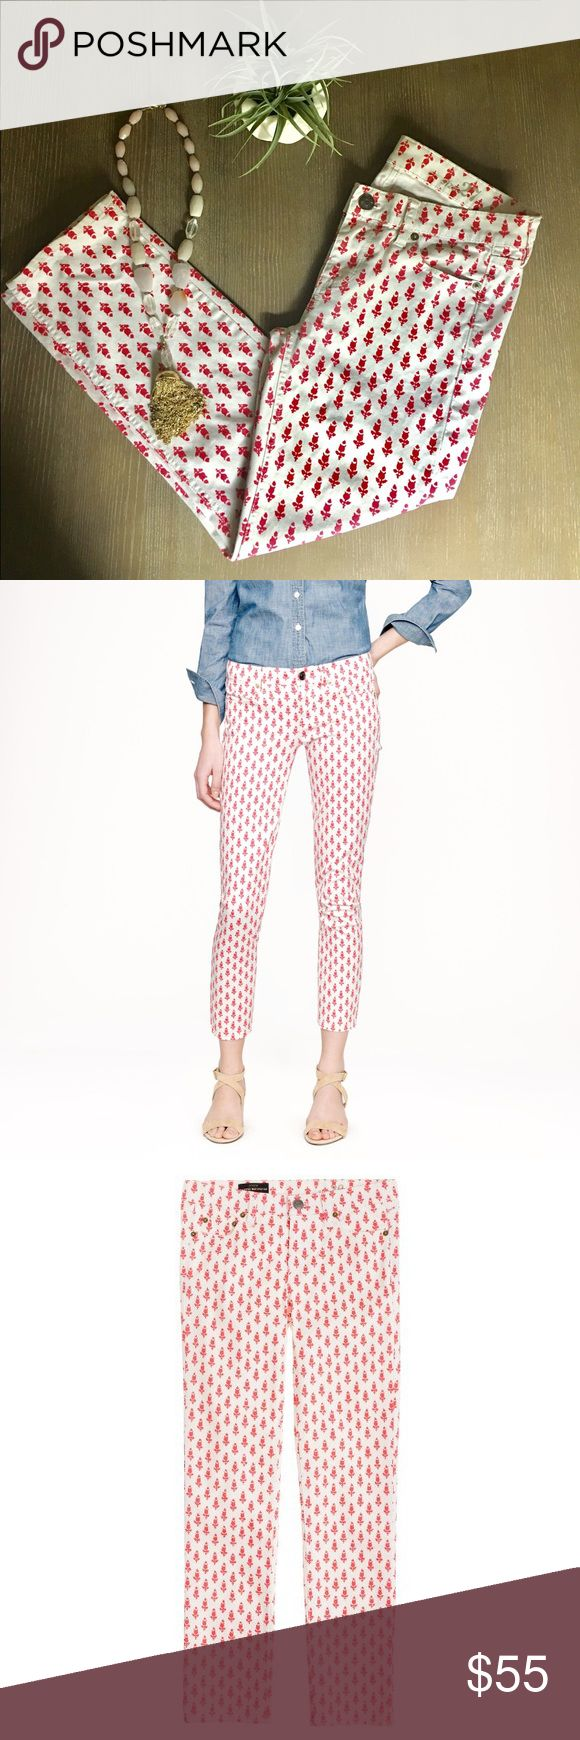 J Crew Cropped Matchstick Jeans Floral Thistle 27 J Crew Cropped Matchstick Jeans Floral Thistle Size 27 - White Jeans with Pink/Red Floral Design. Excellent Condition inseam 25 J. Crew Jeans Ankle & Cropped